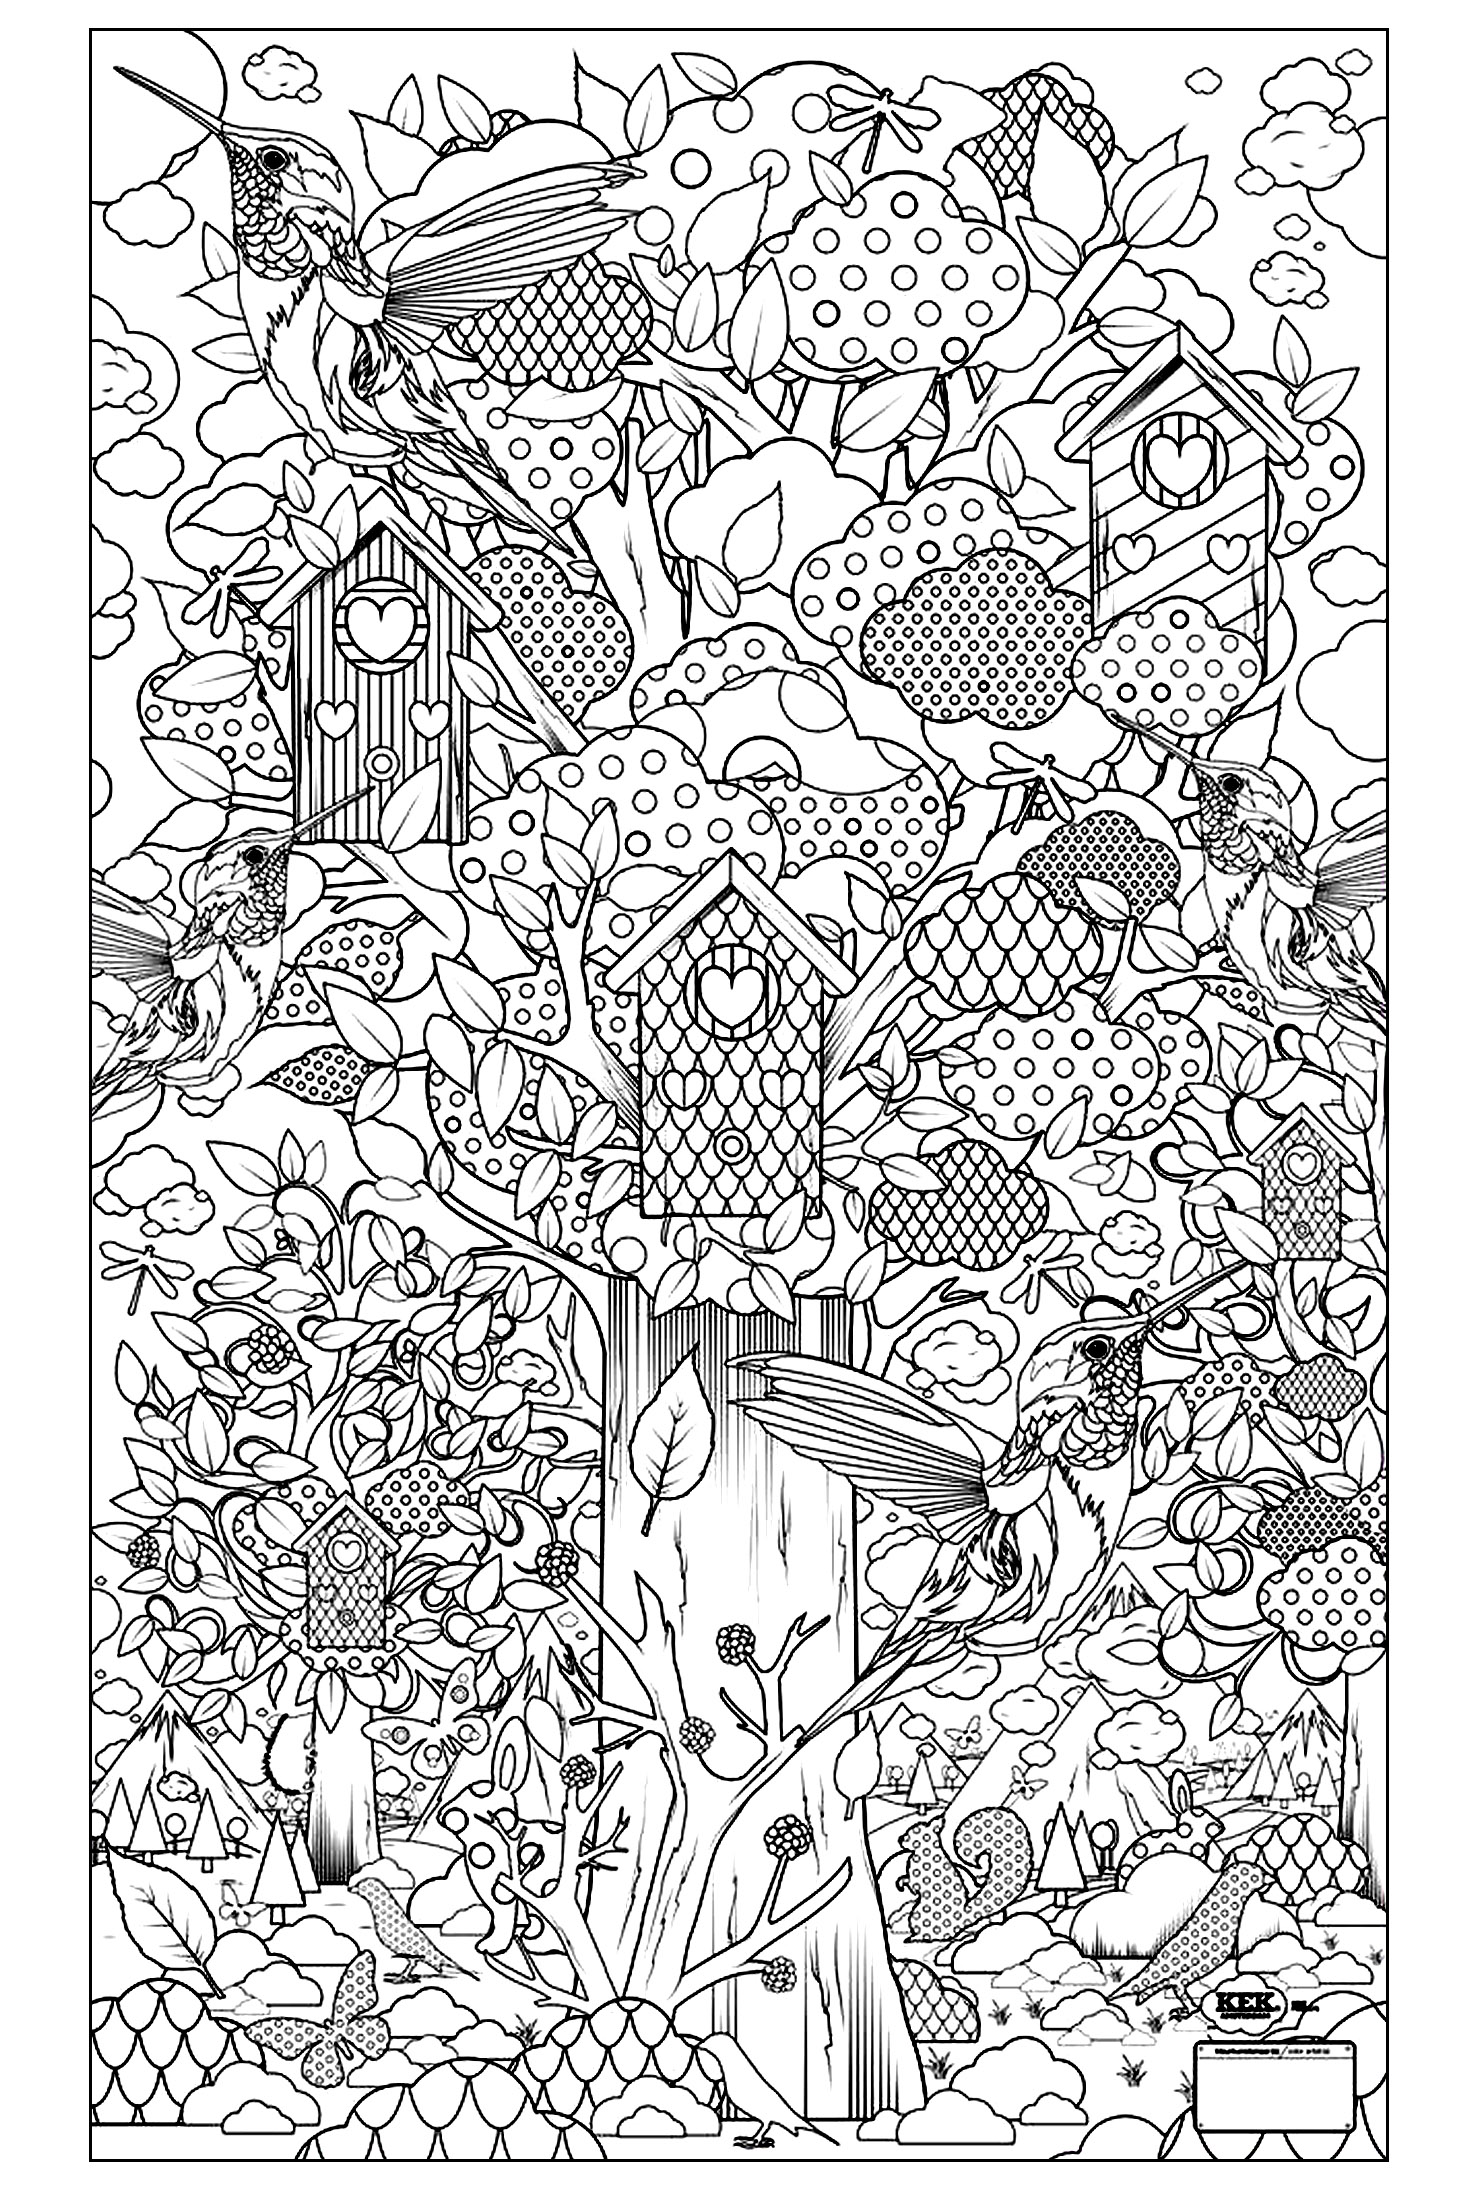 birds and insects coloring pages - birds guarden animals coloring pages for adults